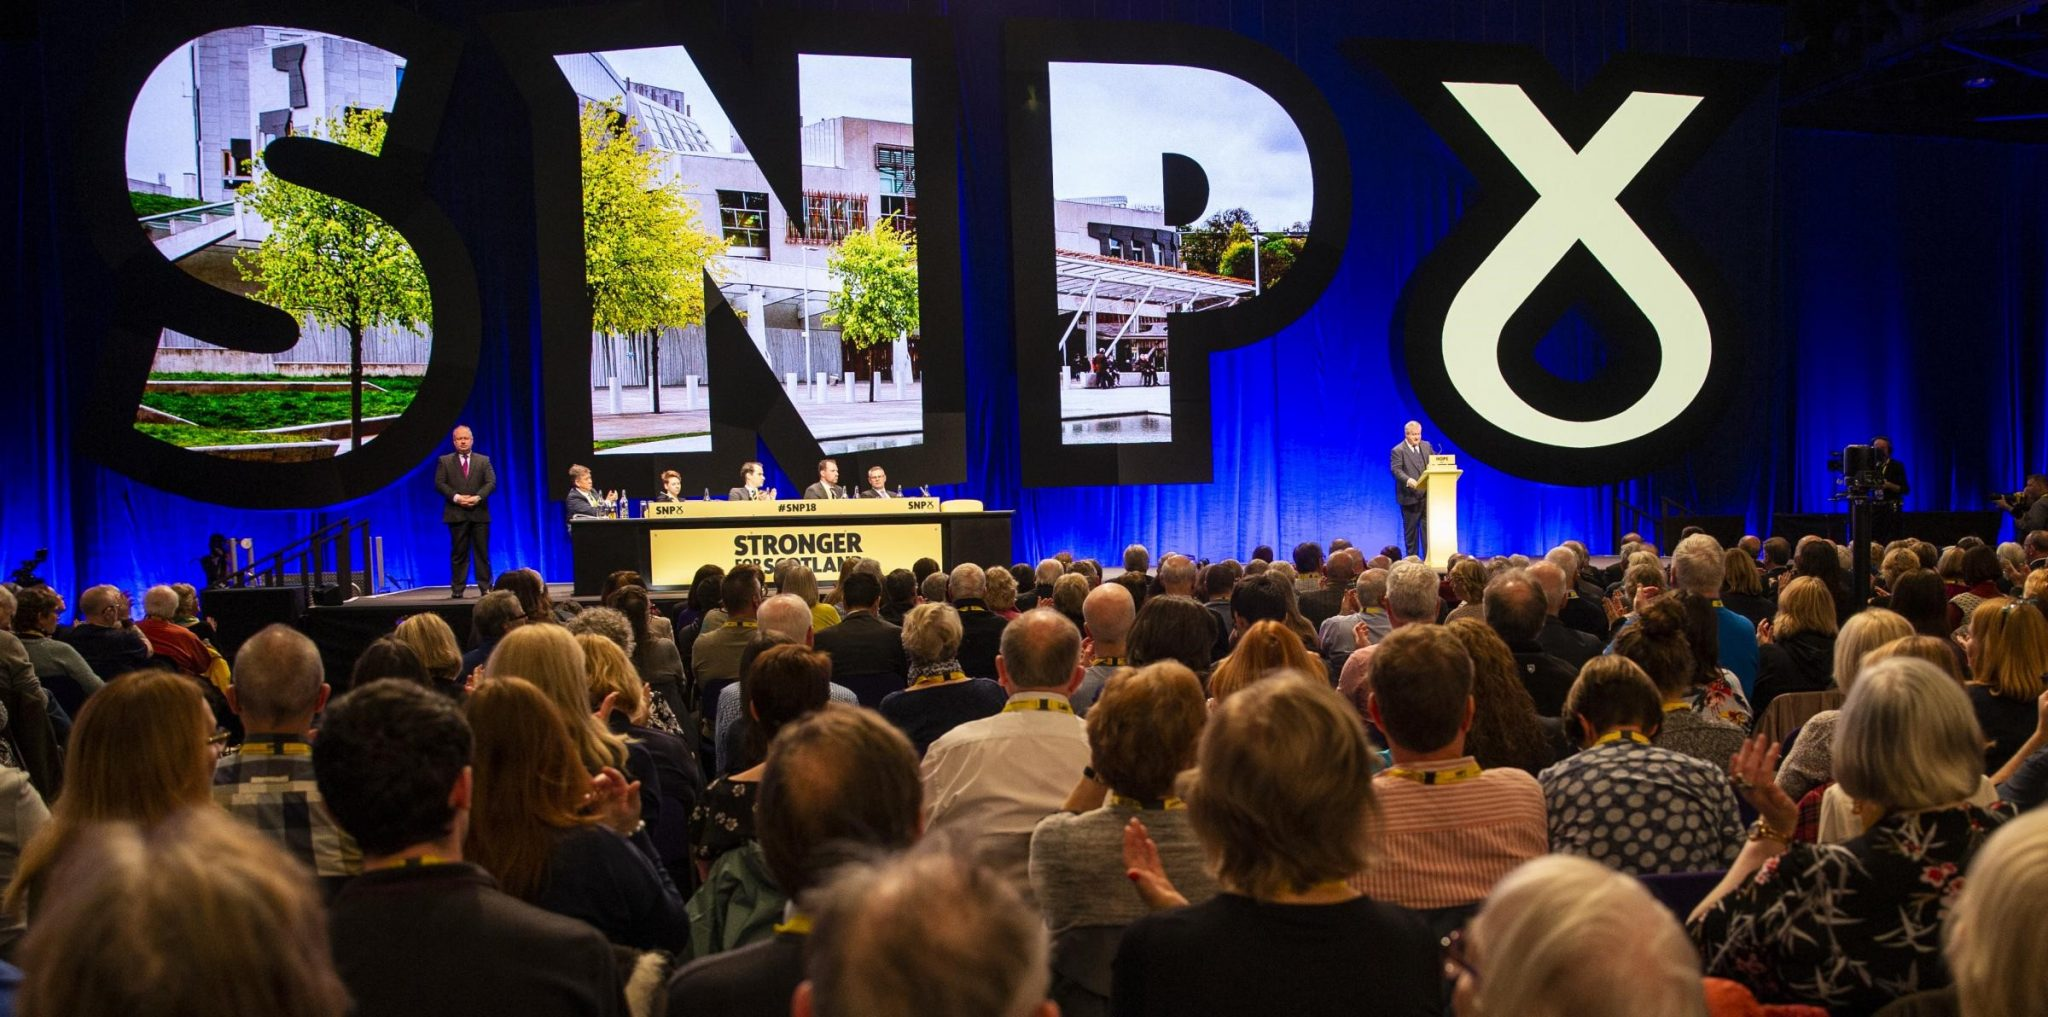 SNP Conference endorses Scotland's case for an independent nation within the EU